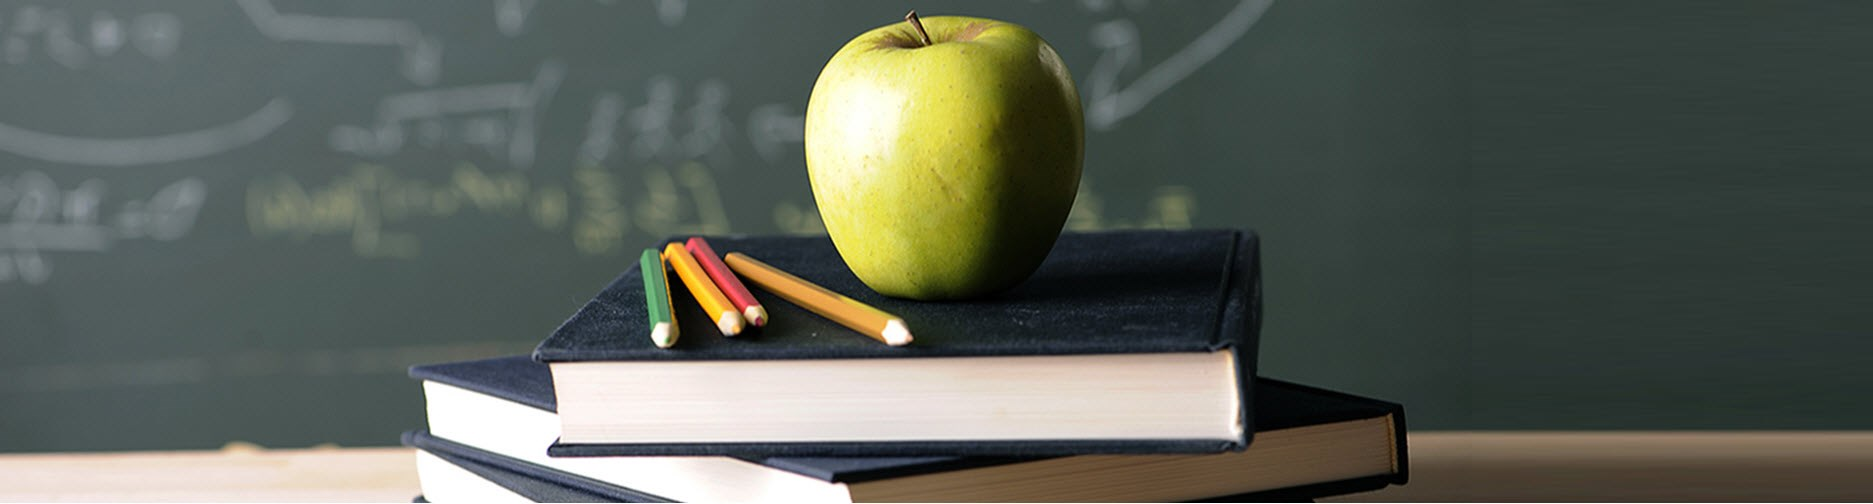 Apple with pencils and books